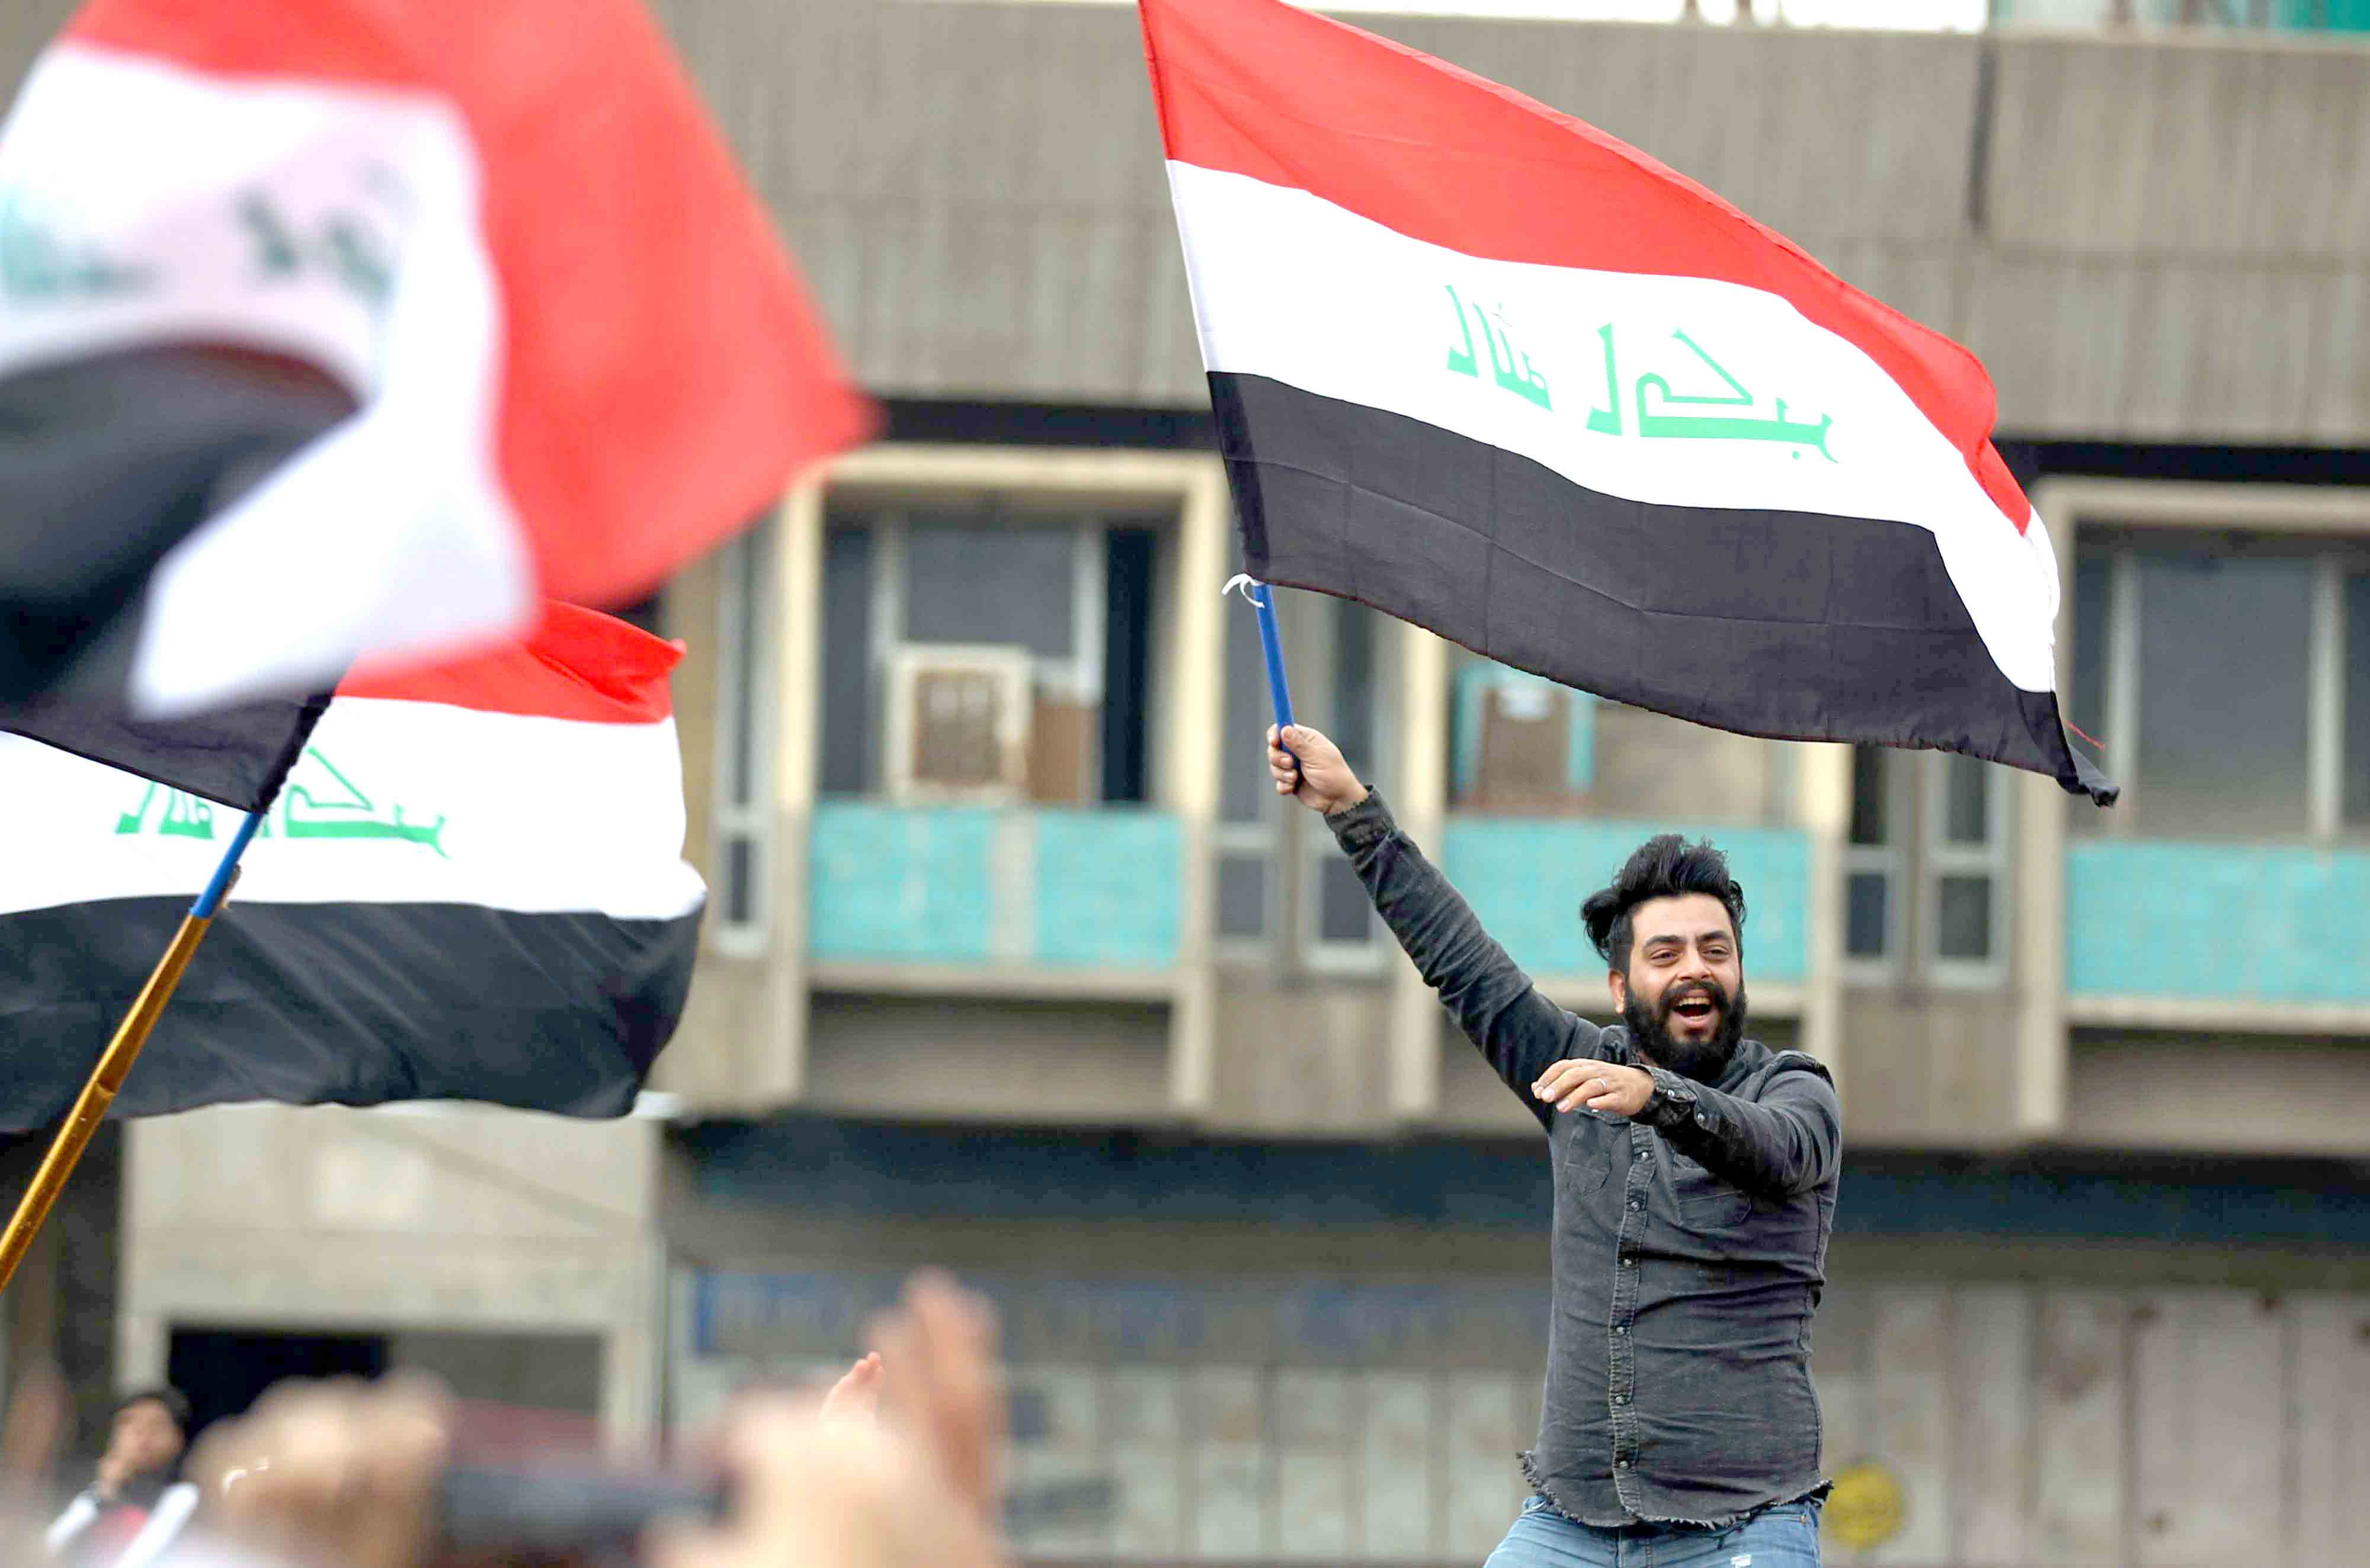 An Iraqi anti-government demonstrator waves the national flag as he protests in Baghdad's Tahrir square, January 10. (AFP)